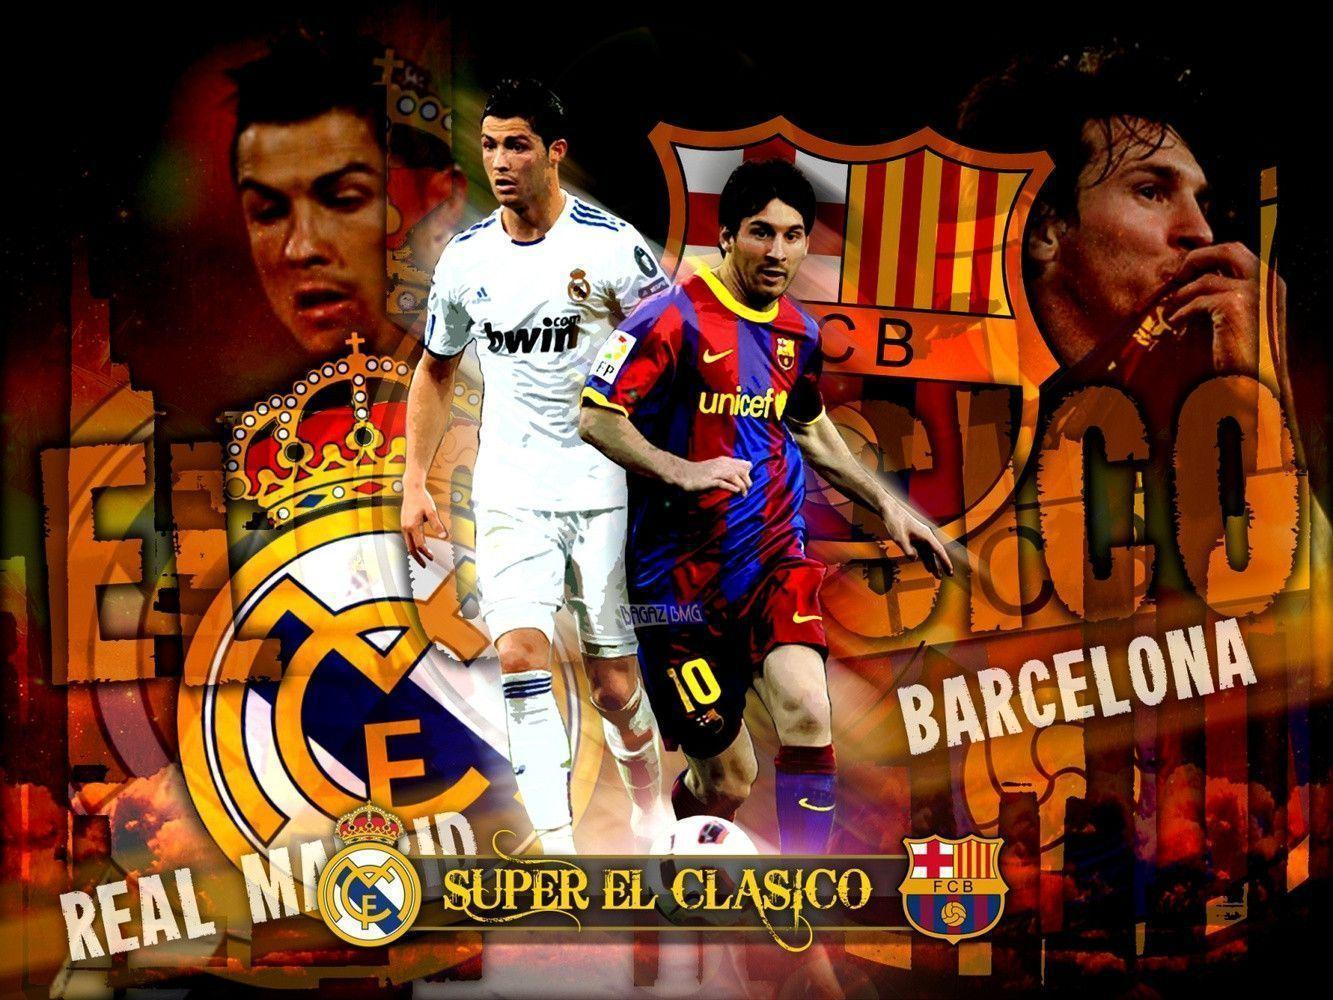 cristiano ronaldo vs lionel messi 2015 wallpapers